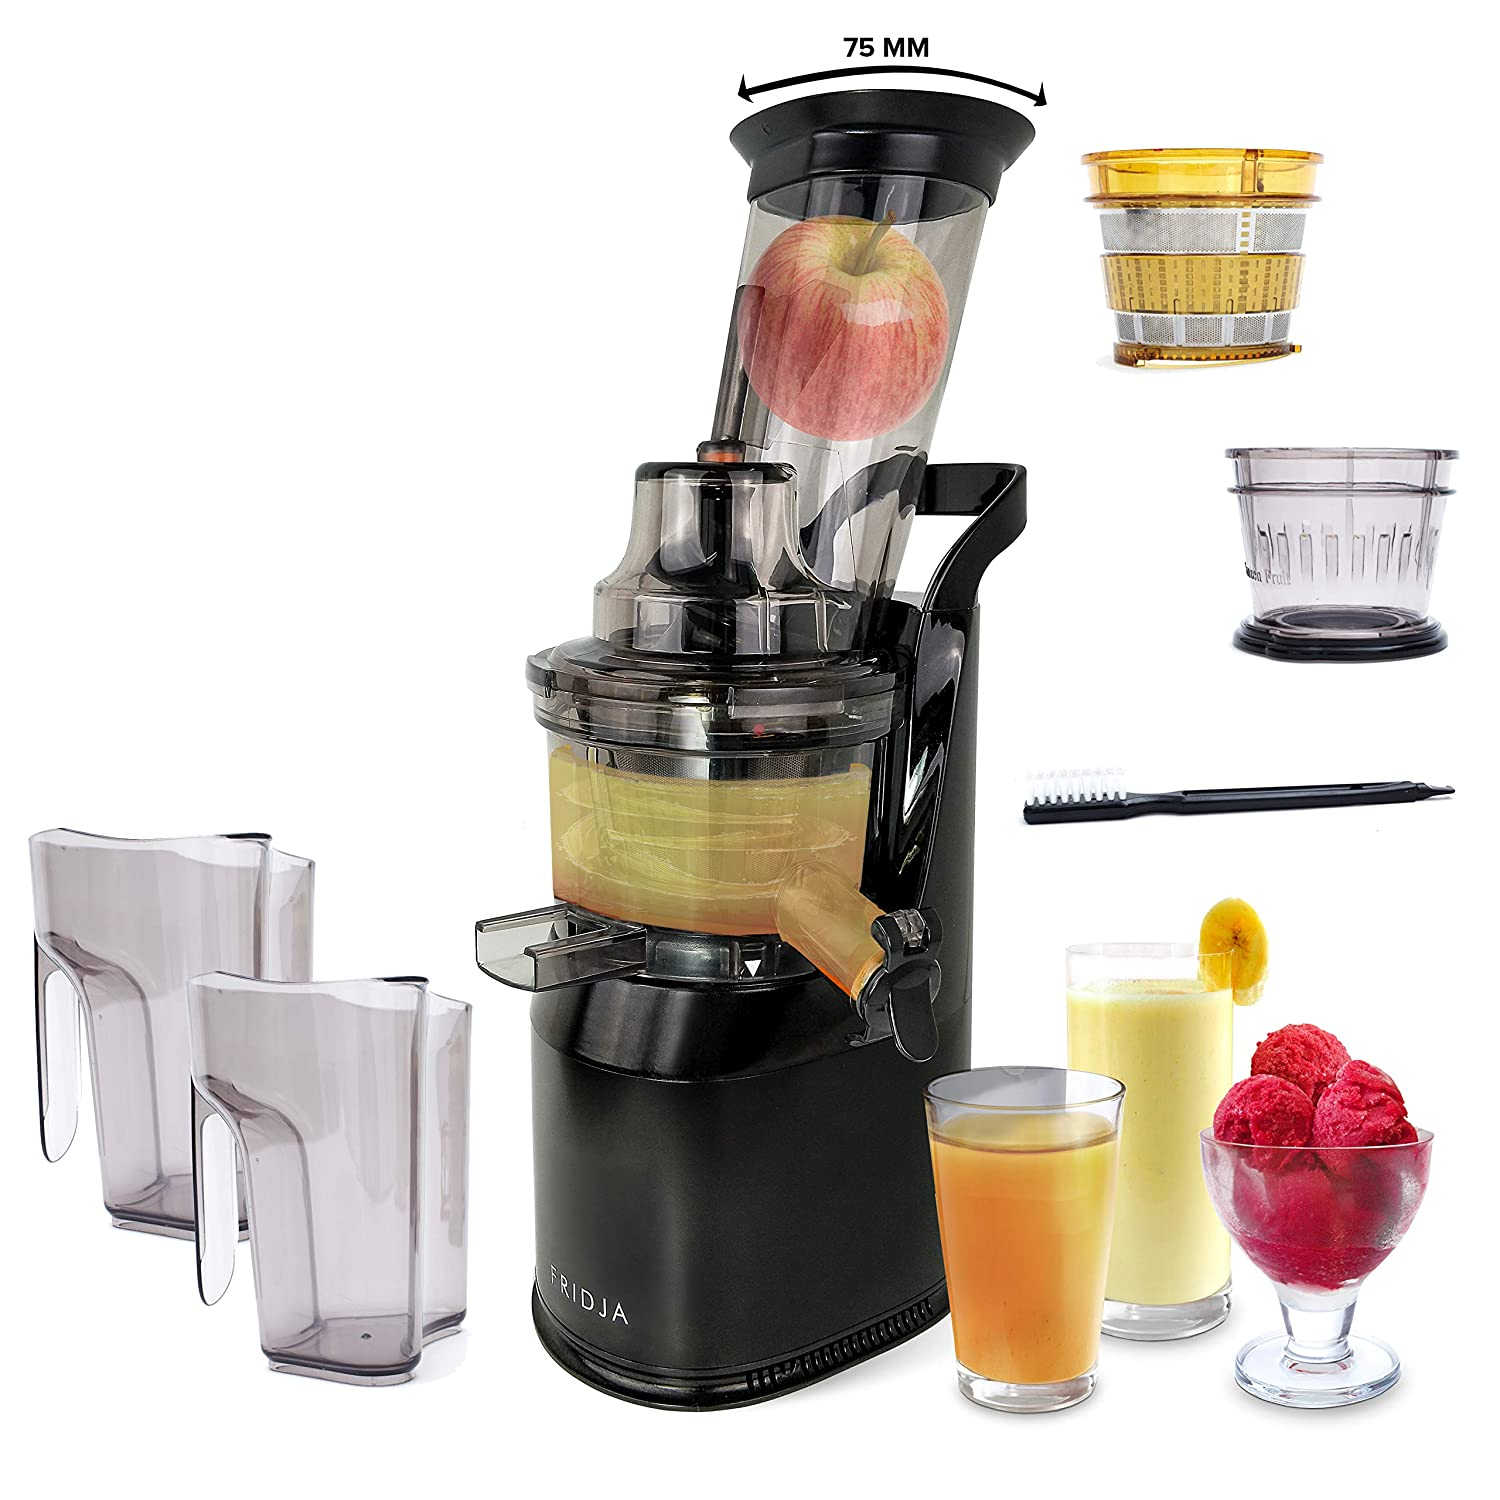 Powerful Masticating Juicer for Whole Fruits and Vegetables - Creates Fresh Healthy Juice, Sorbet, Ice Cream, Tilted Wide Mouth 75mm Feeding Chute, BPA Free, 240-Watt, Quiet, Slow Speed, Cold Press, Black Stainless Steel - Fridja f1900 Sergio